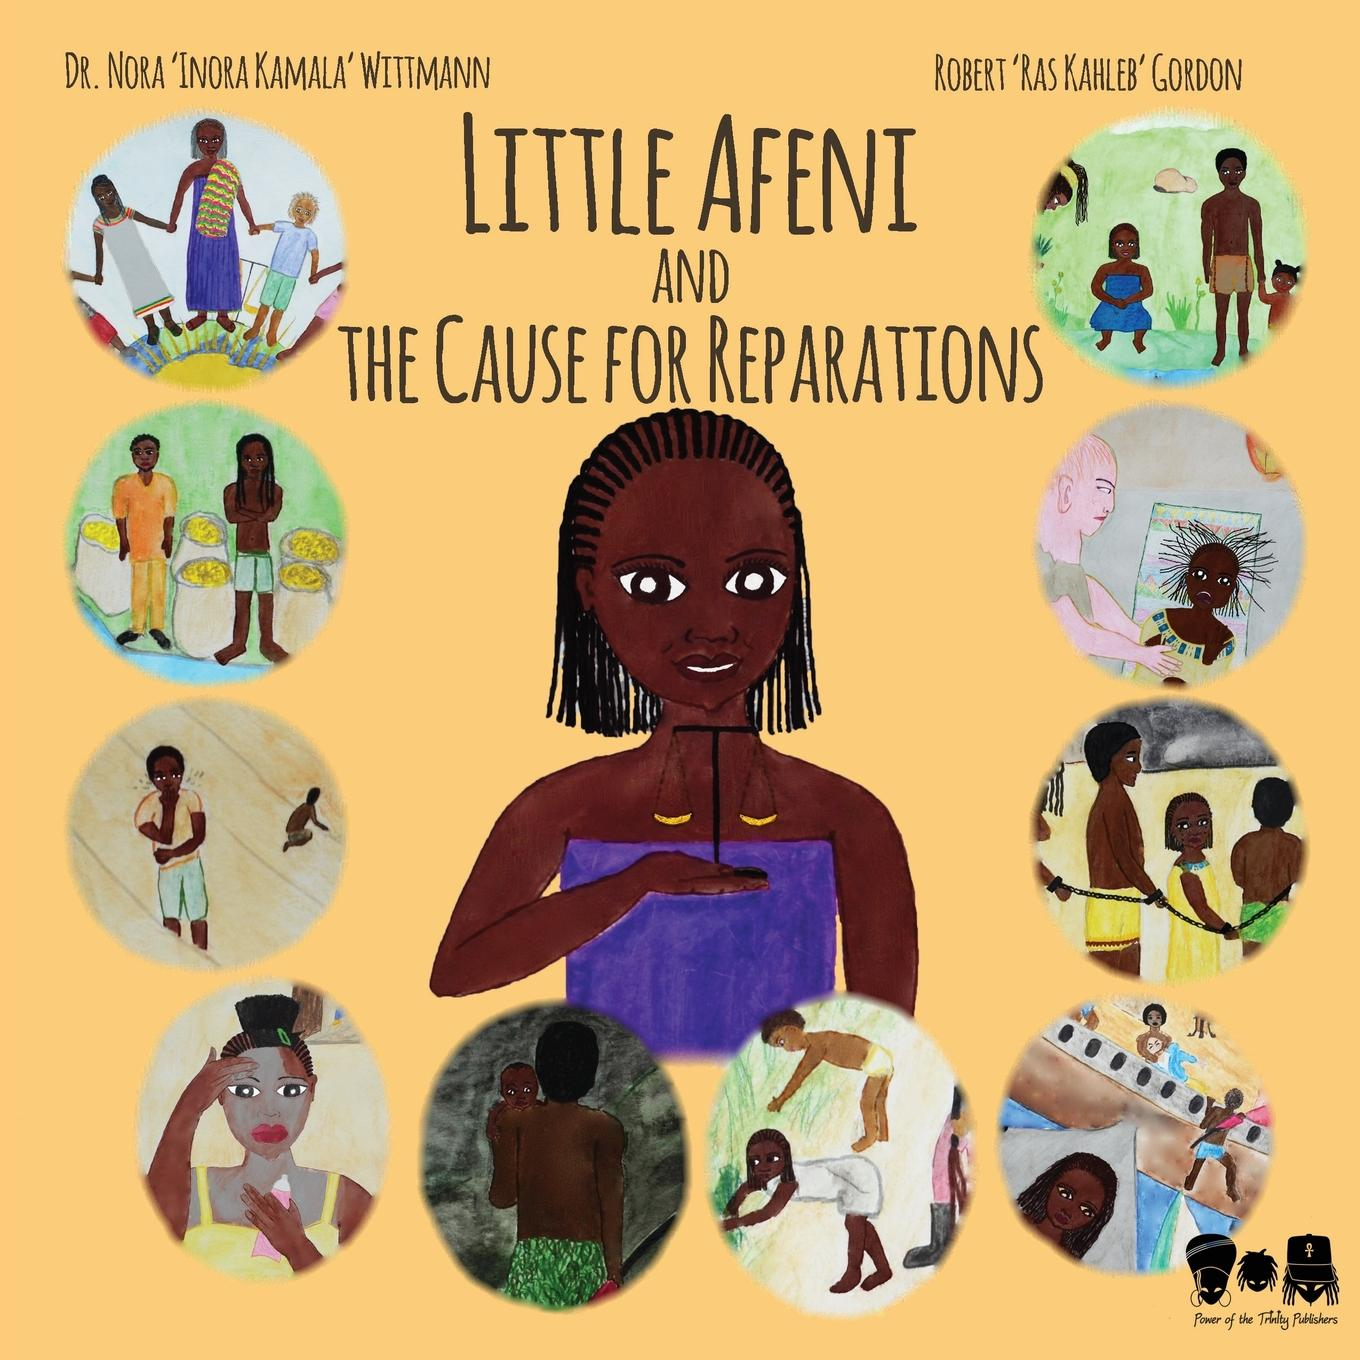 Little Afeni and the Cause for Reparations